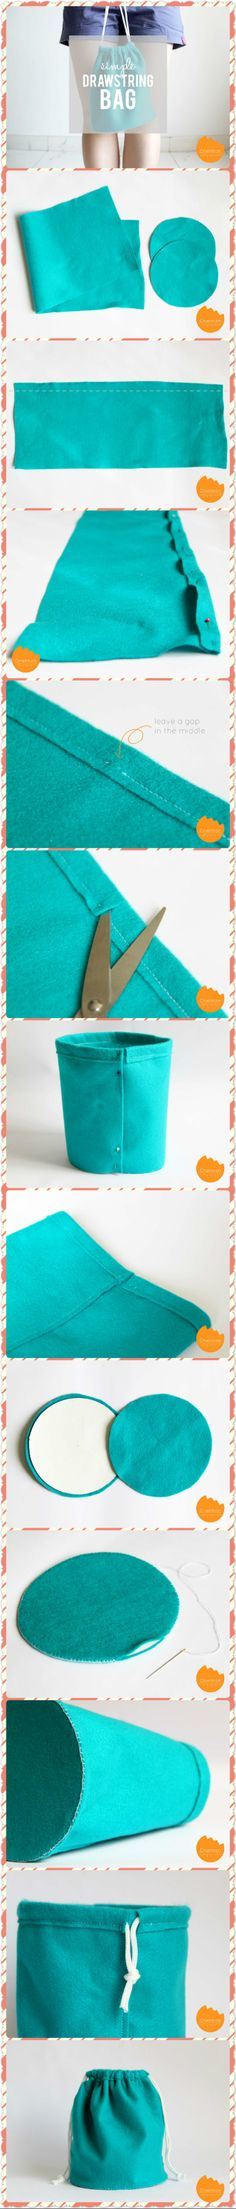 Simply Sewn Drawstring Bag with One